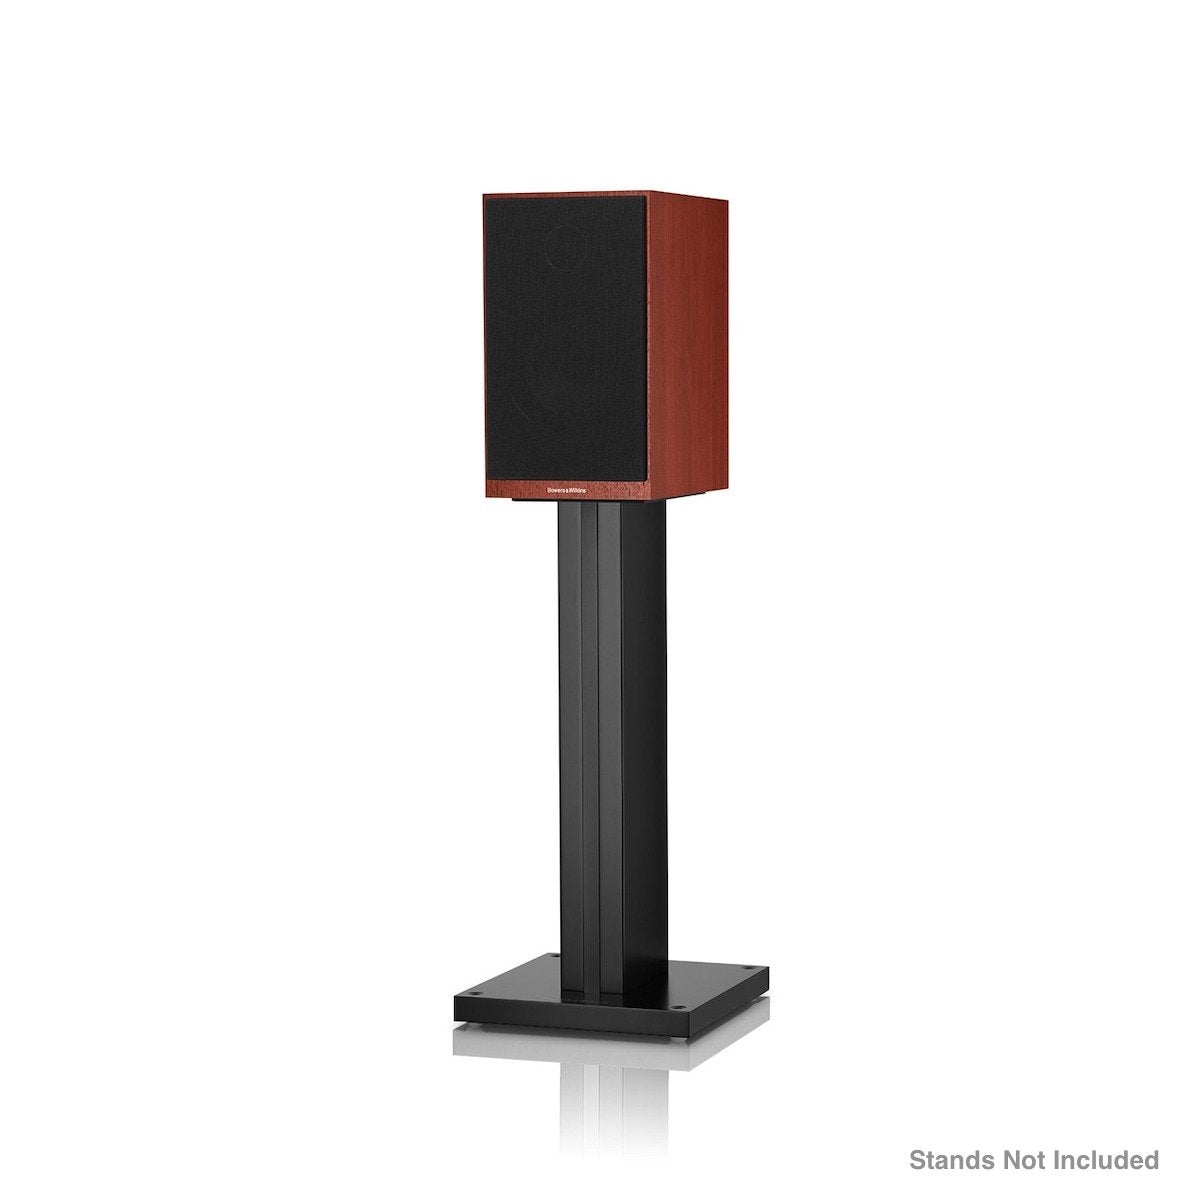 Bowers & Wilkins 706 S2 - Bookshelf Speaker - Pair, Bowers & Wilkins, Bookshelf Speaker - AVStore.in